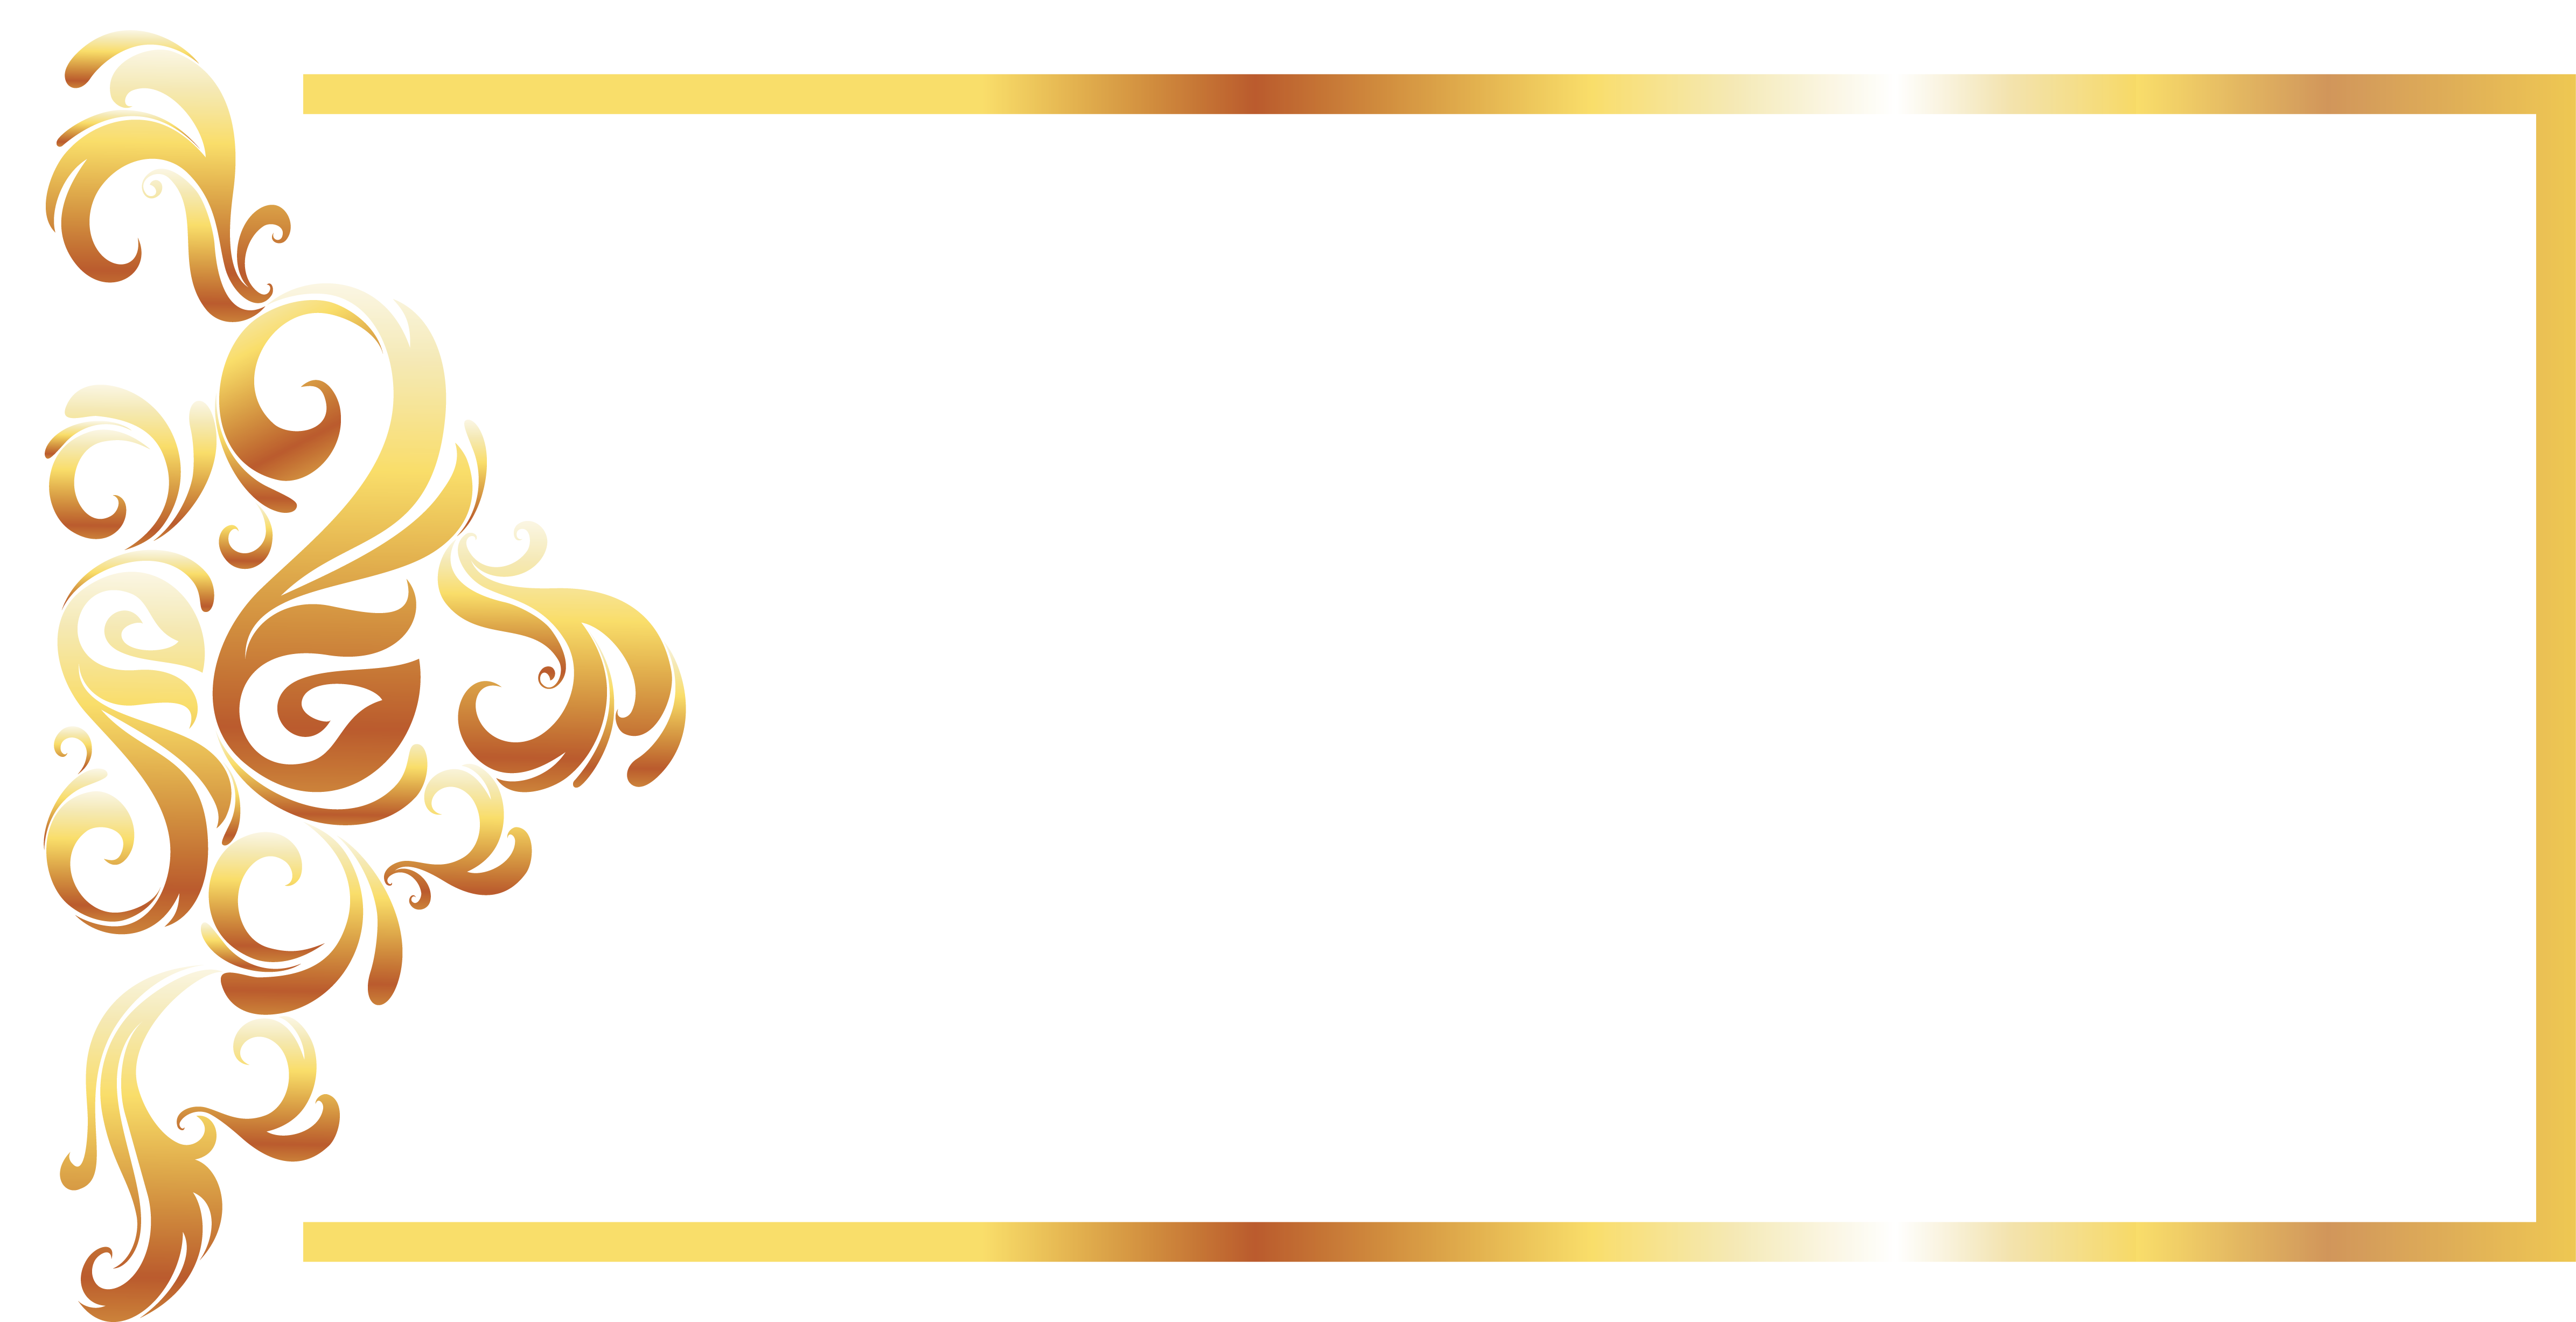 Gold border png. Yellow recreation pattern line